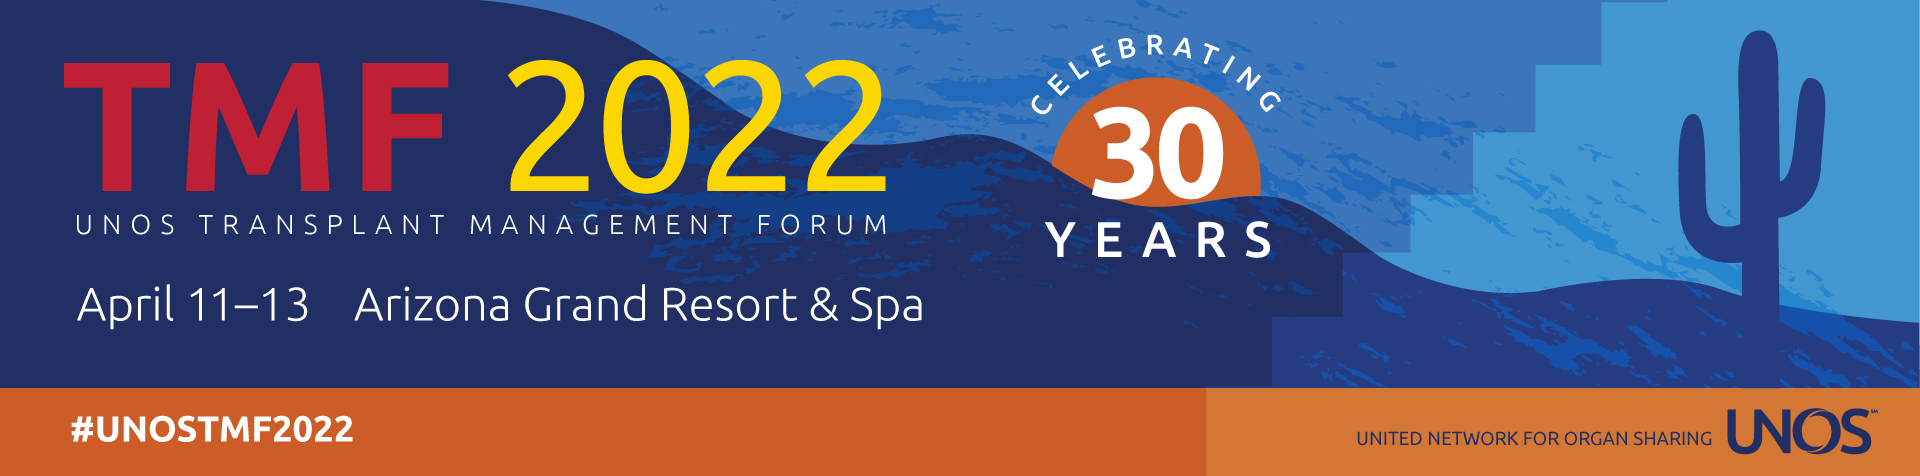 Transplant Management Forum 2022 will be in Phoenix